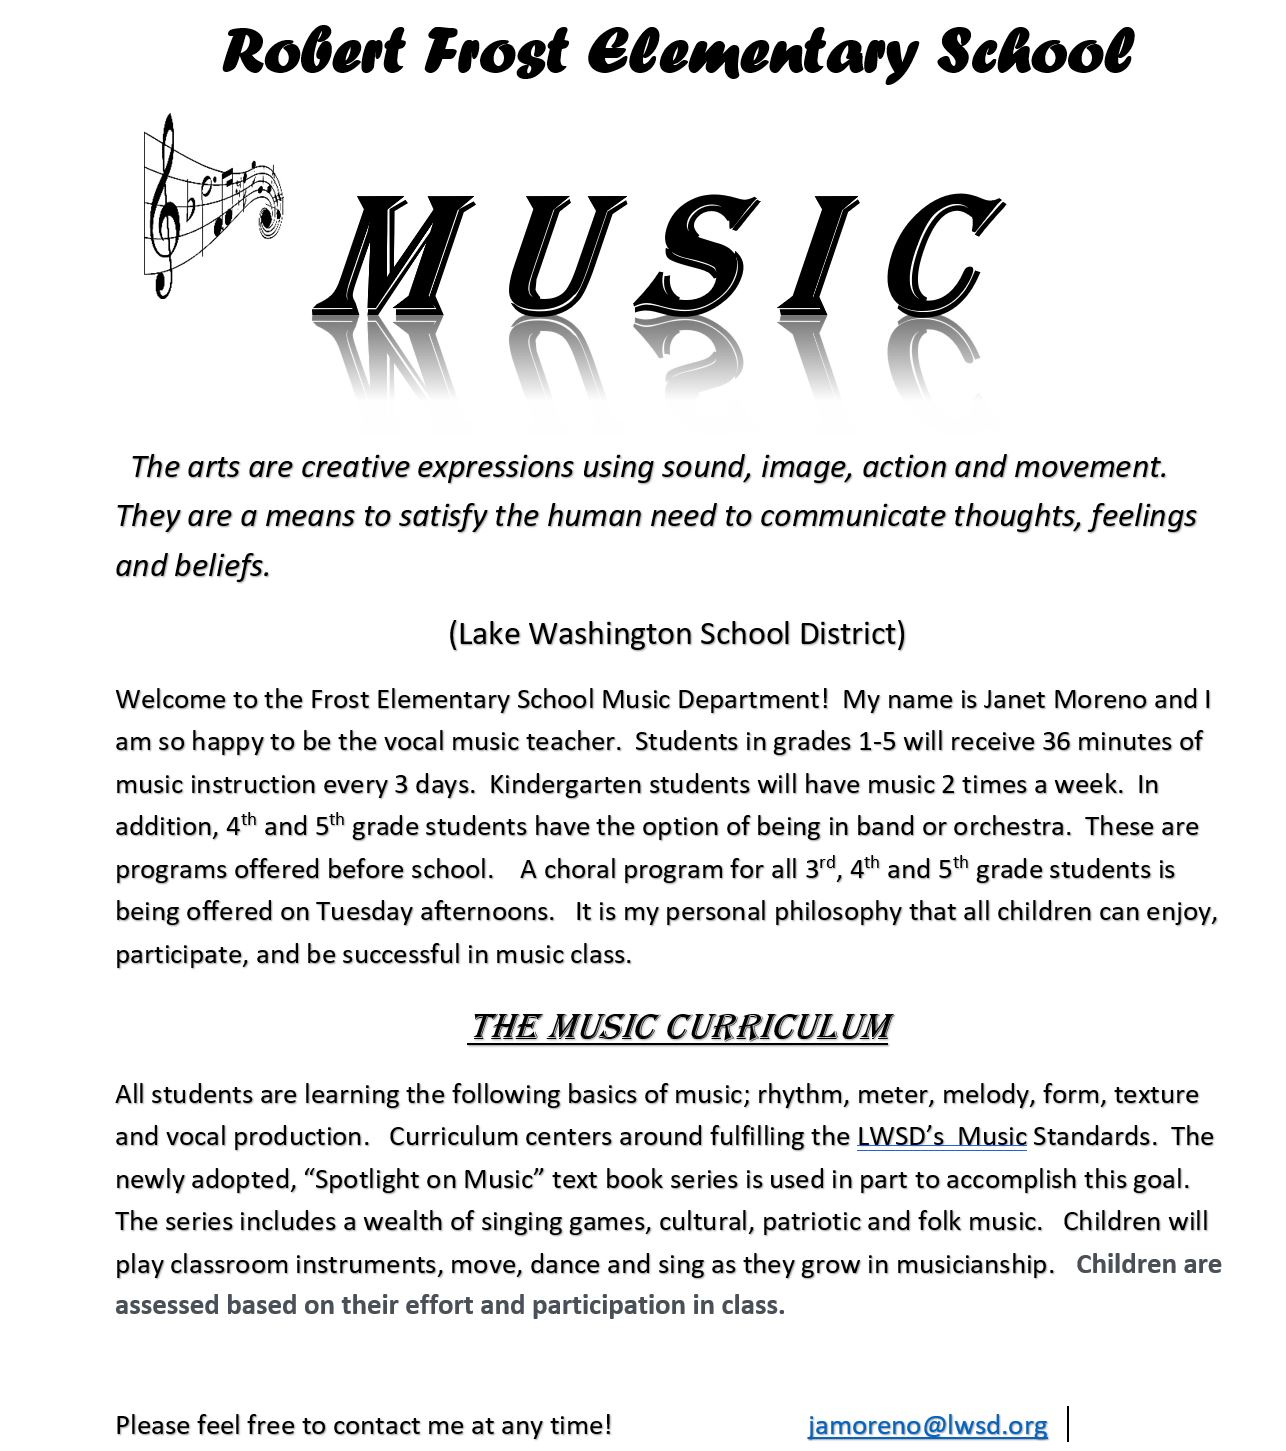 Description of the Robert Frost Elementary School Music program